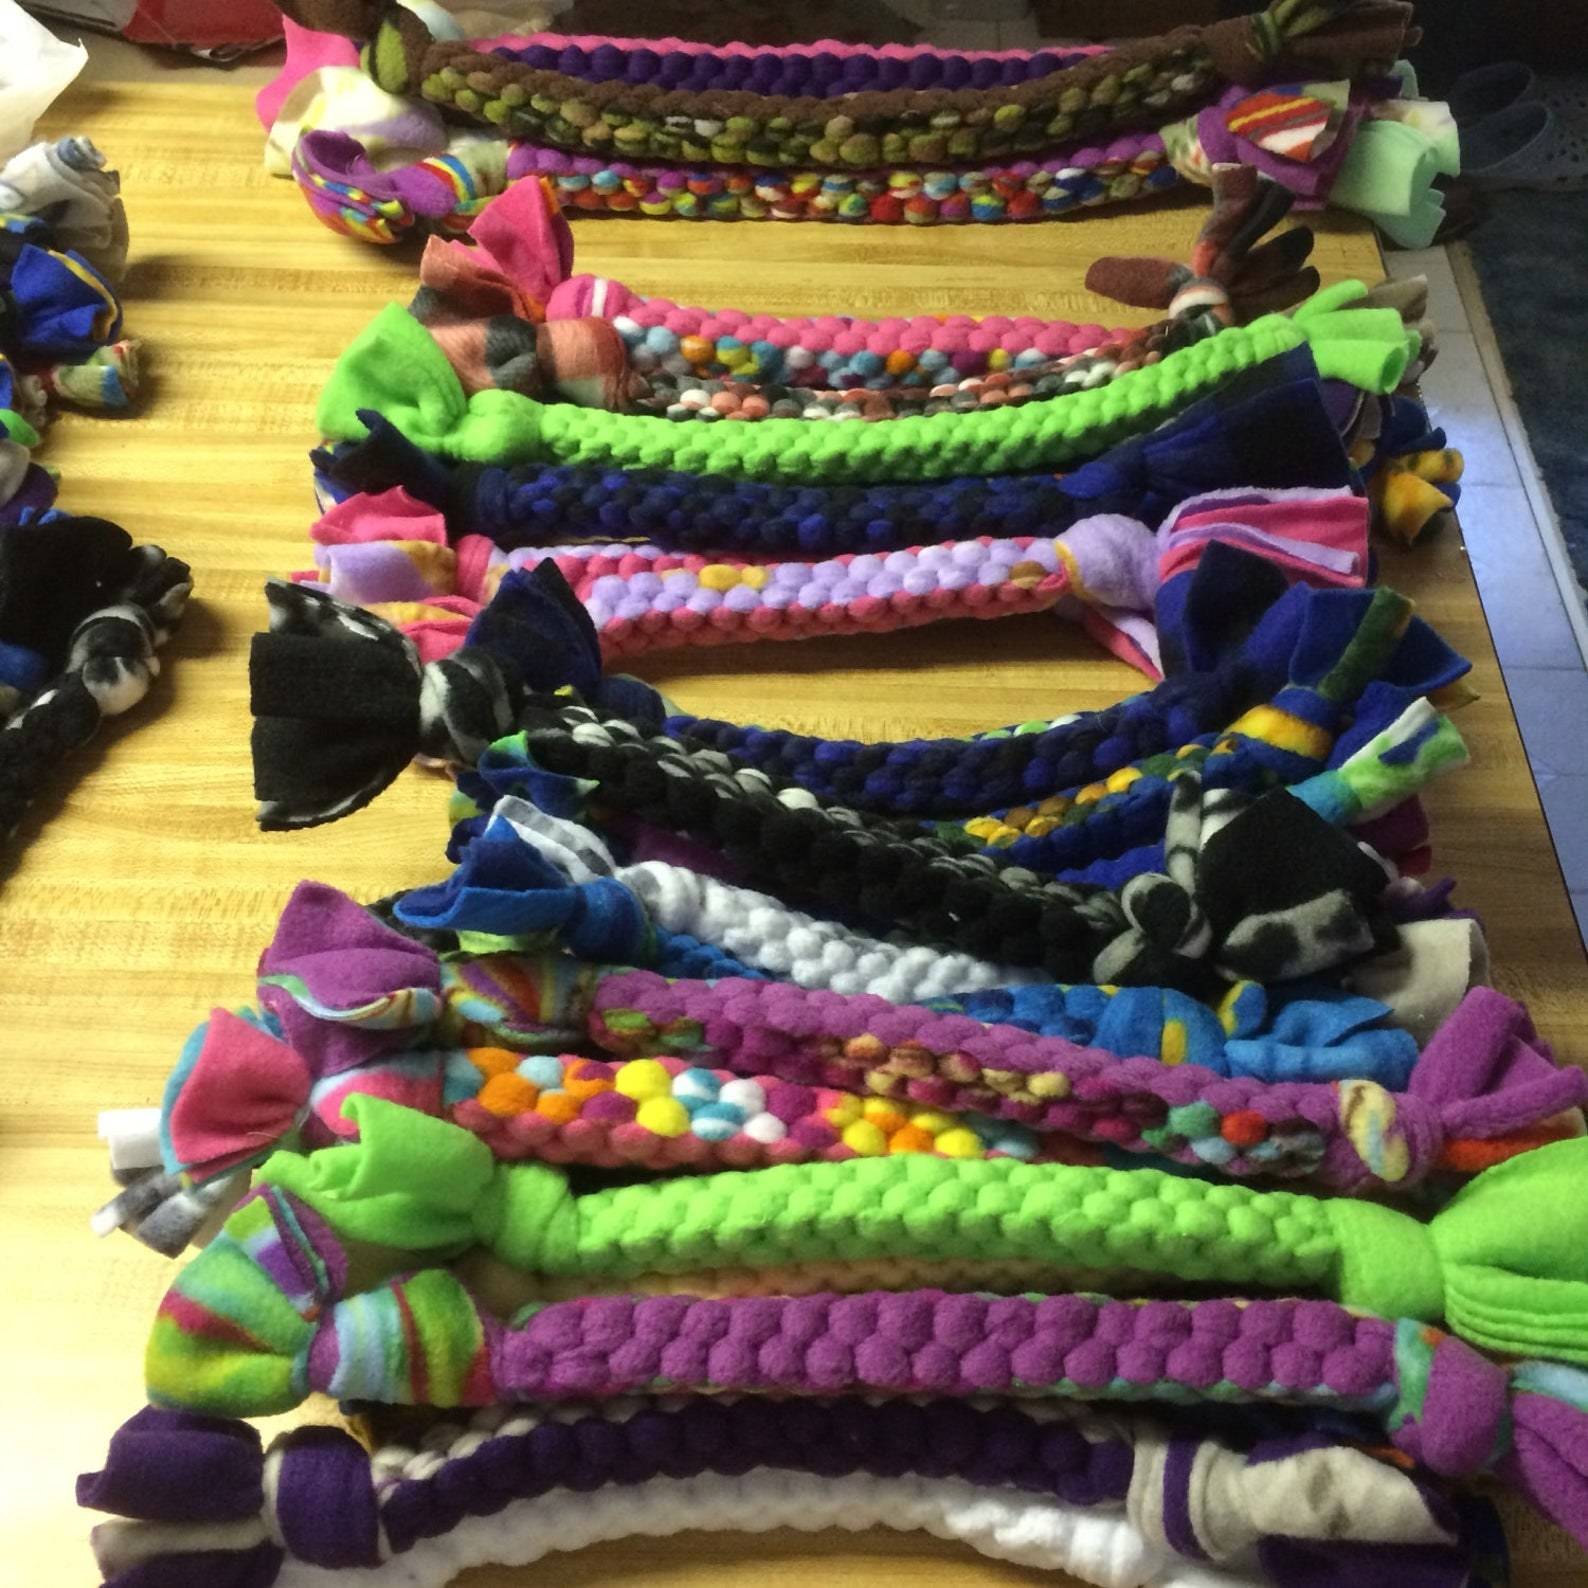 A pile of braided tug toys in assorted color combinations